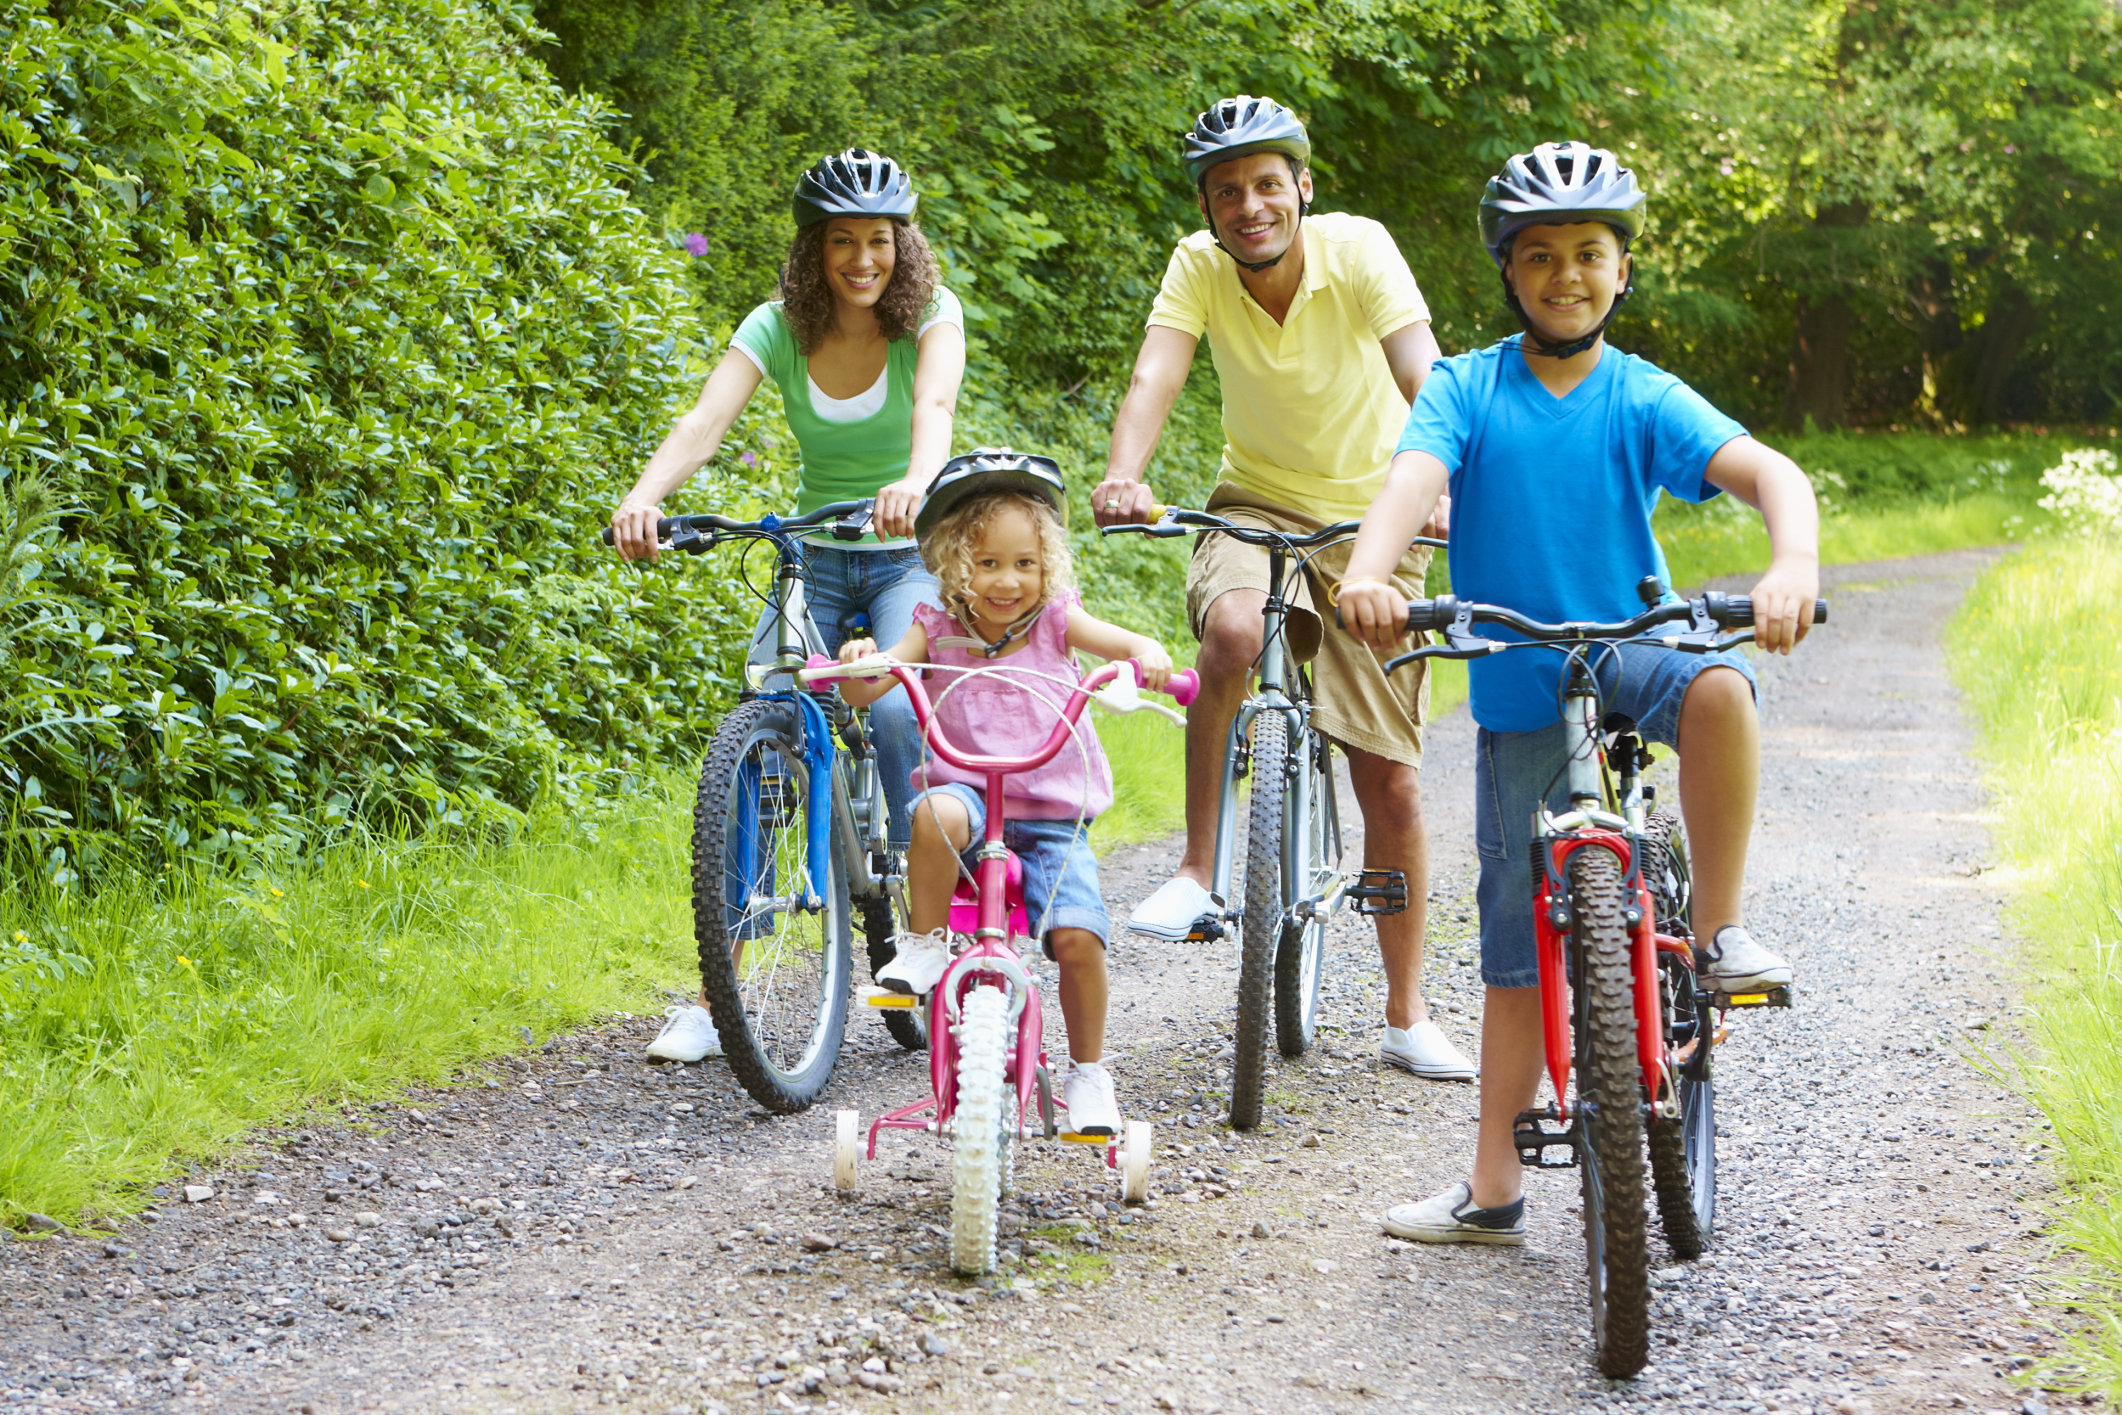 Alternatives to Keep You Looking Fit, biking